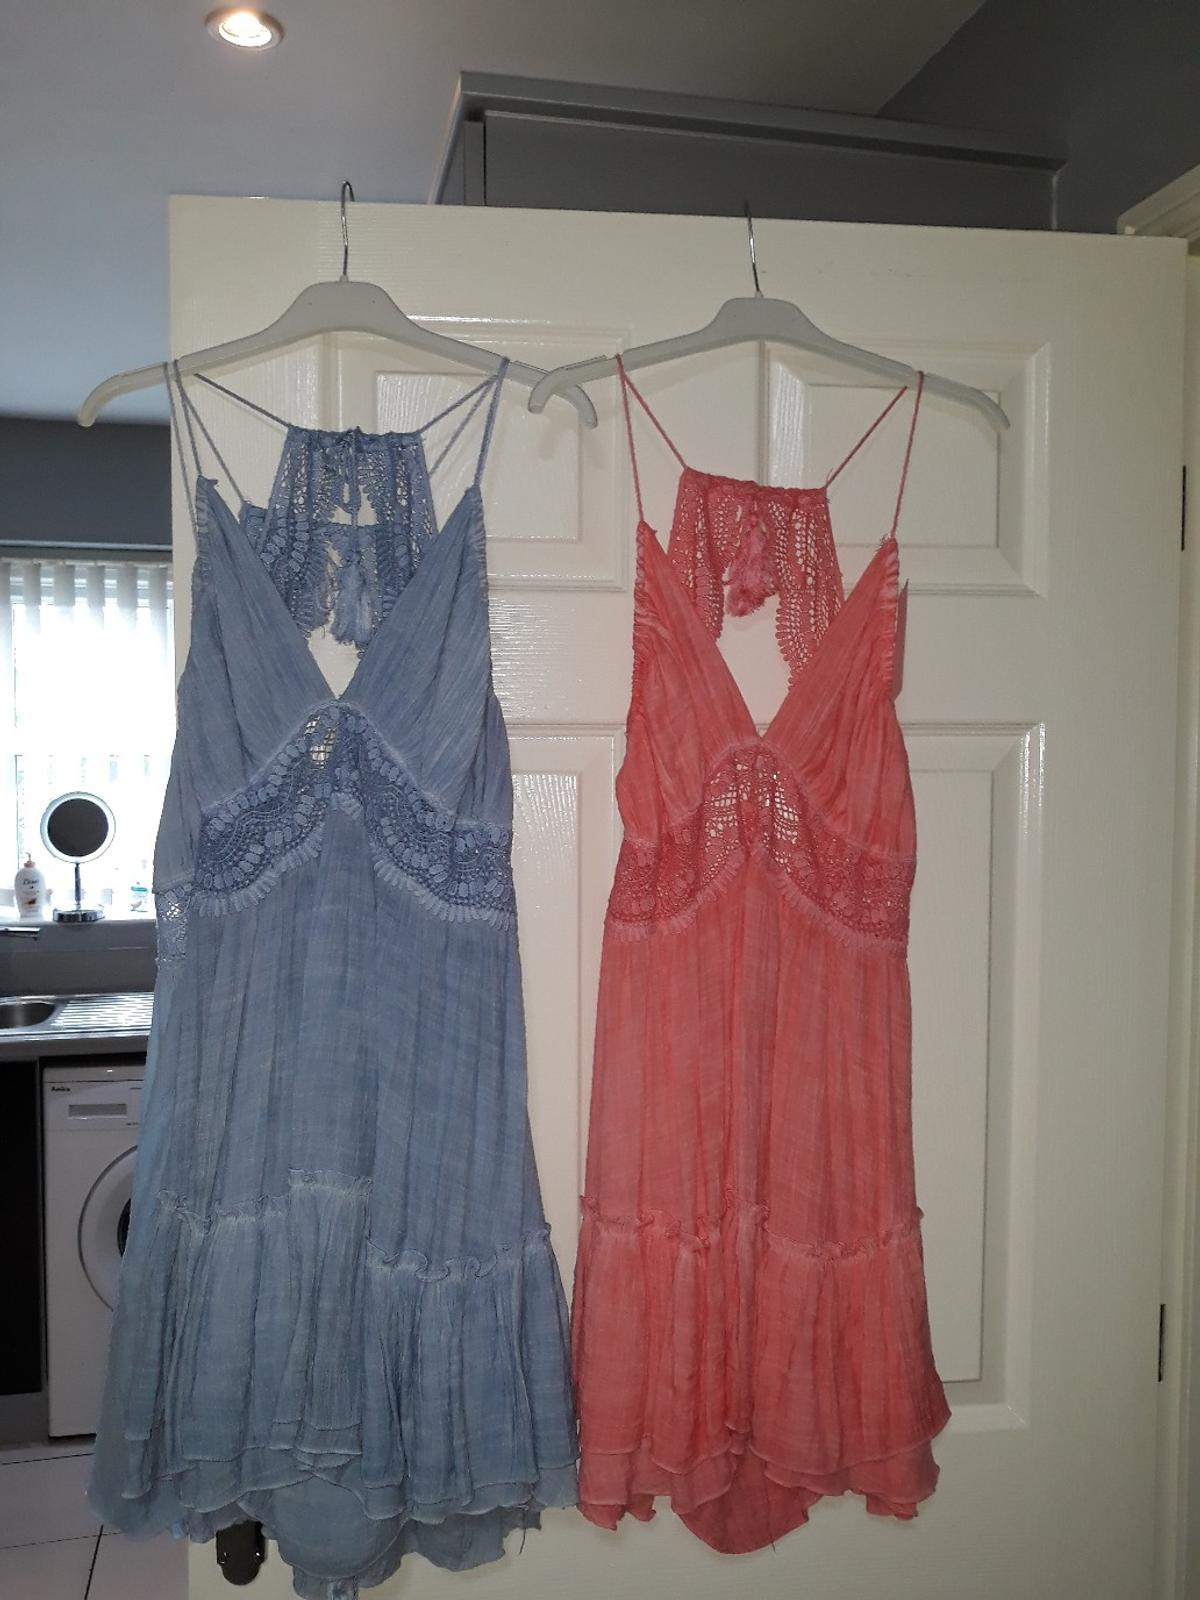 brand new summer dresses size 8 to 14 these r 7 pound each